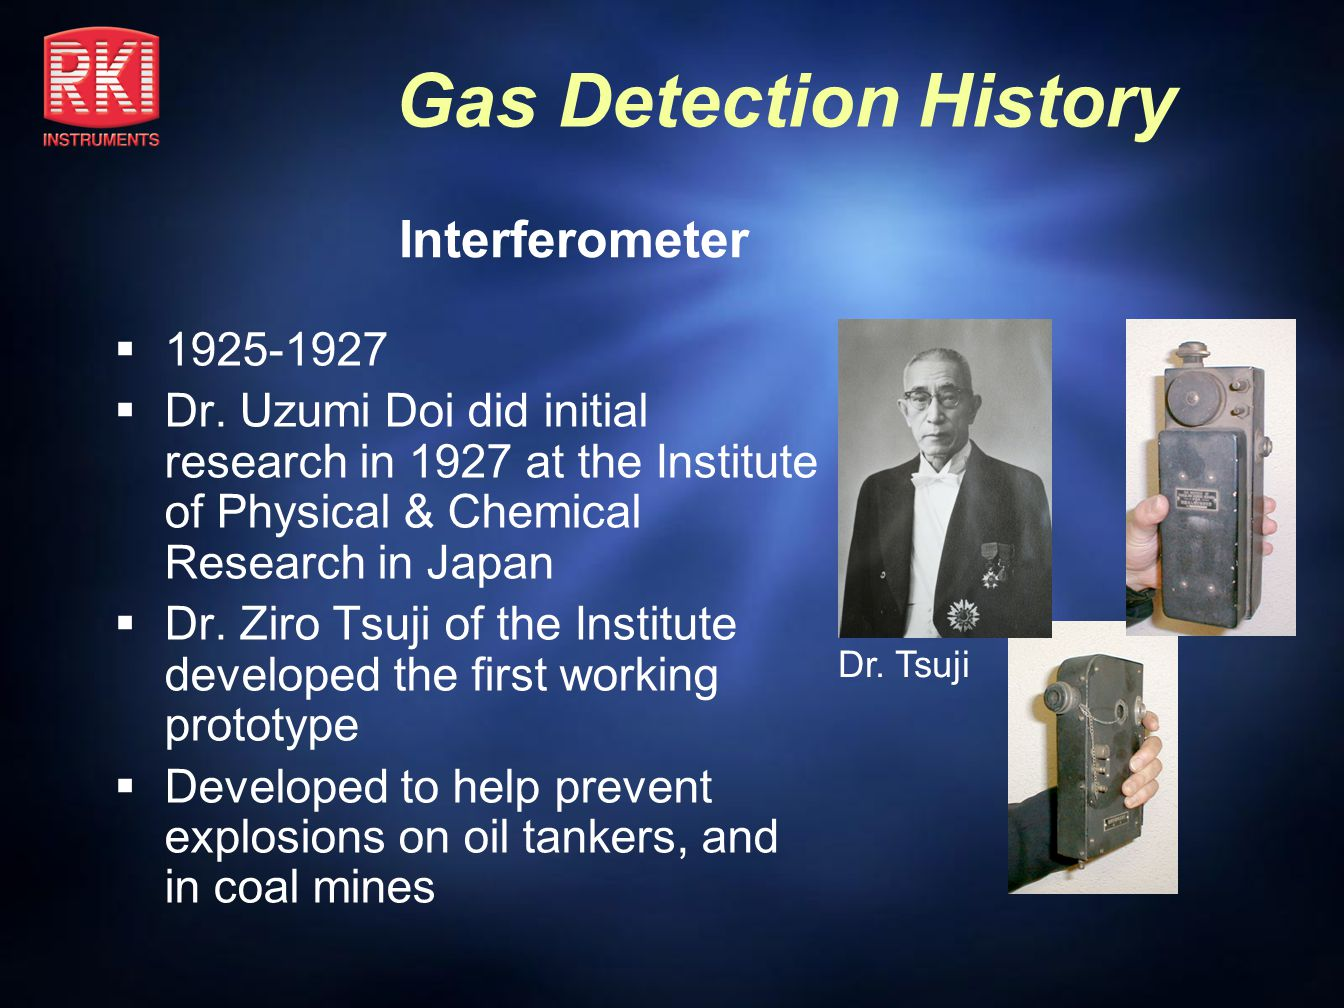 Interferometer 1925-1927. Dr. Uzumi Doi did initial research in 1927 at the Institute of Physical & Chemical Research in Japan.